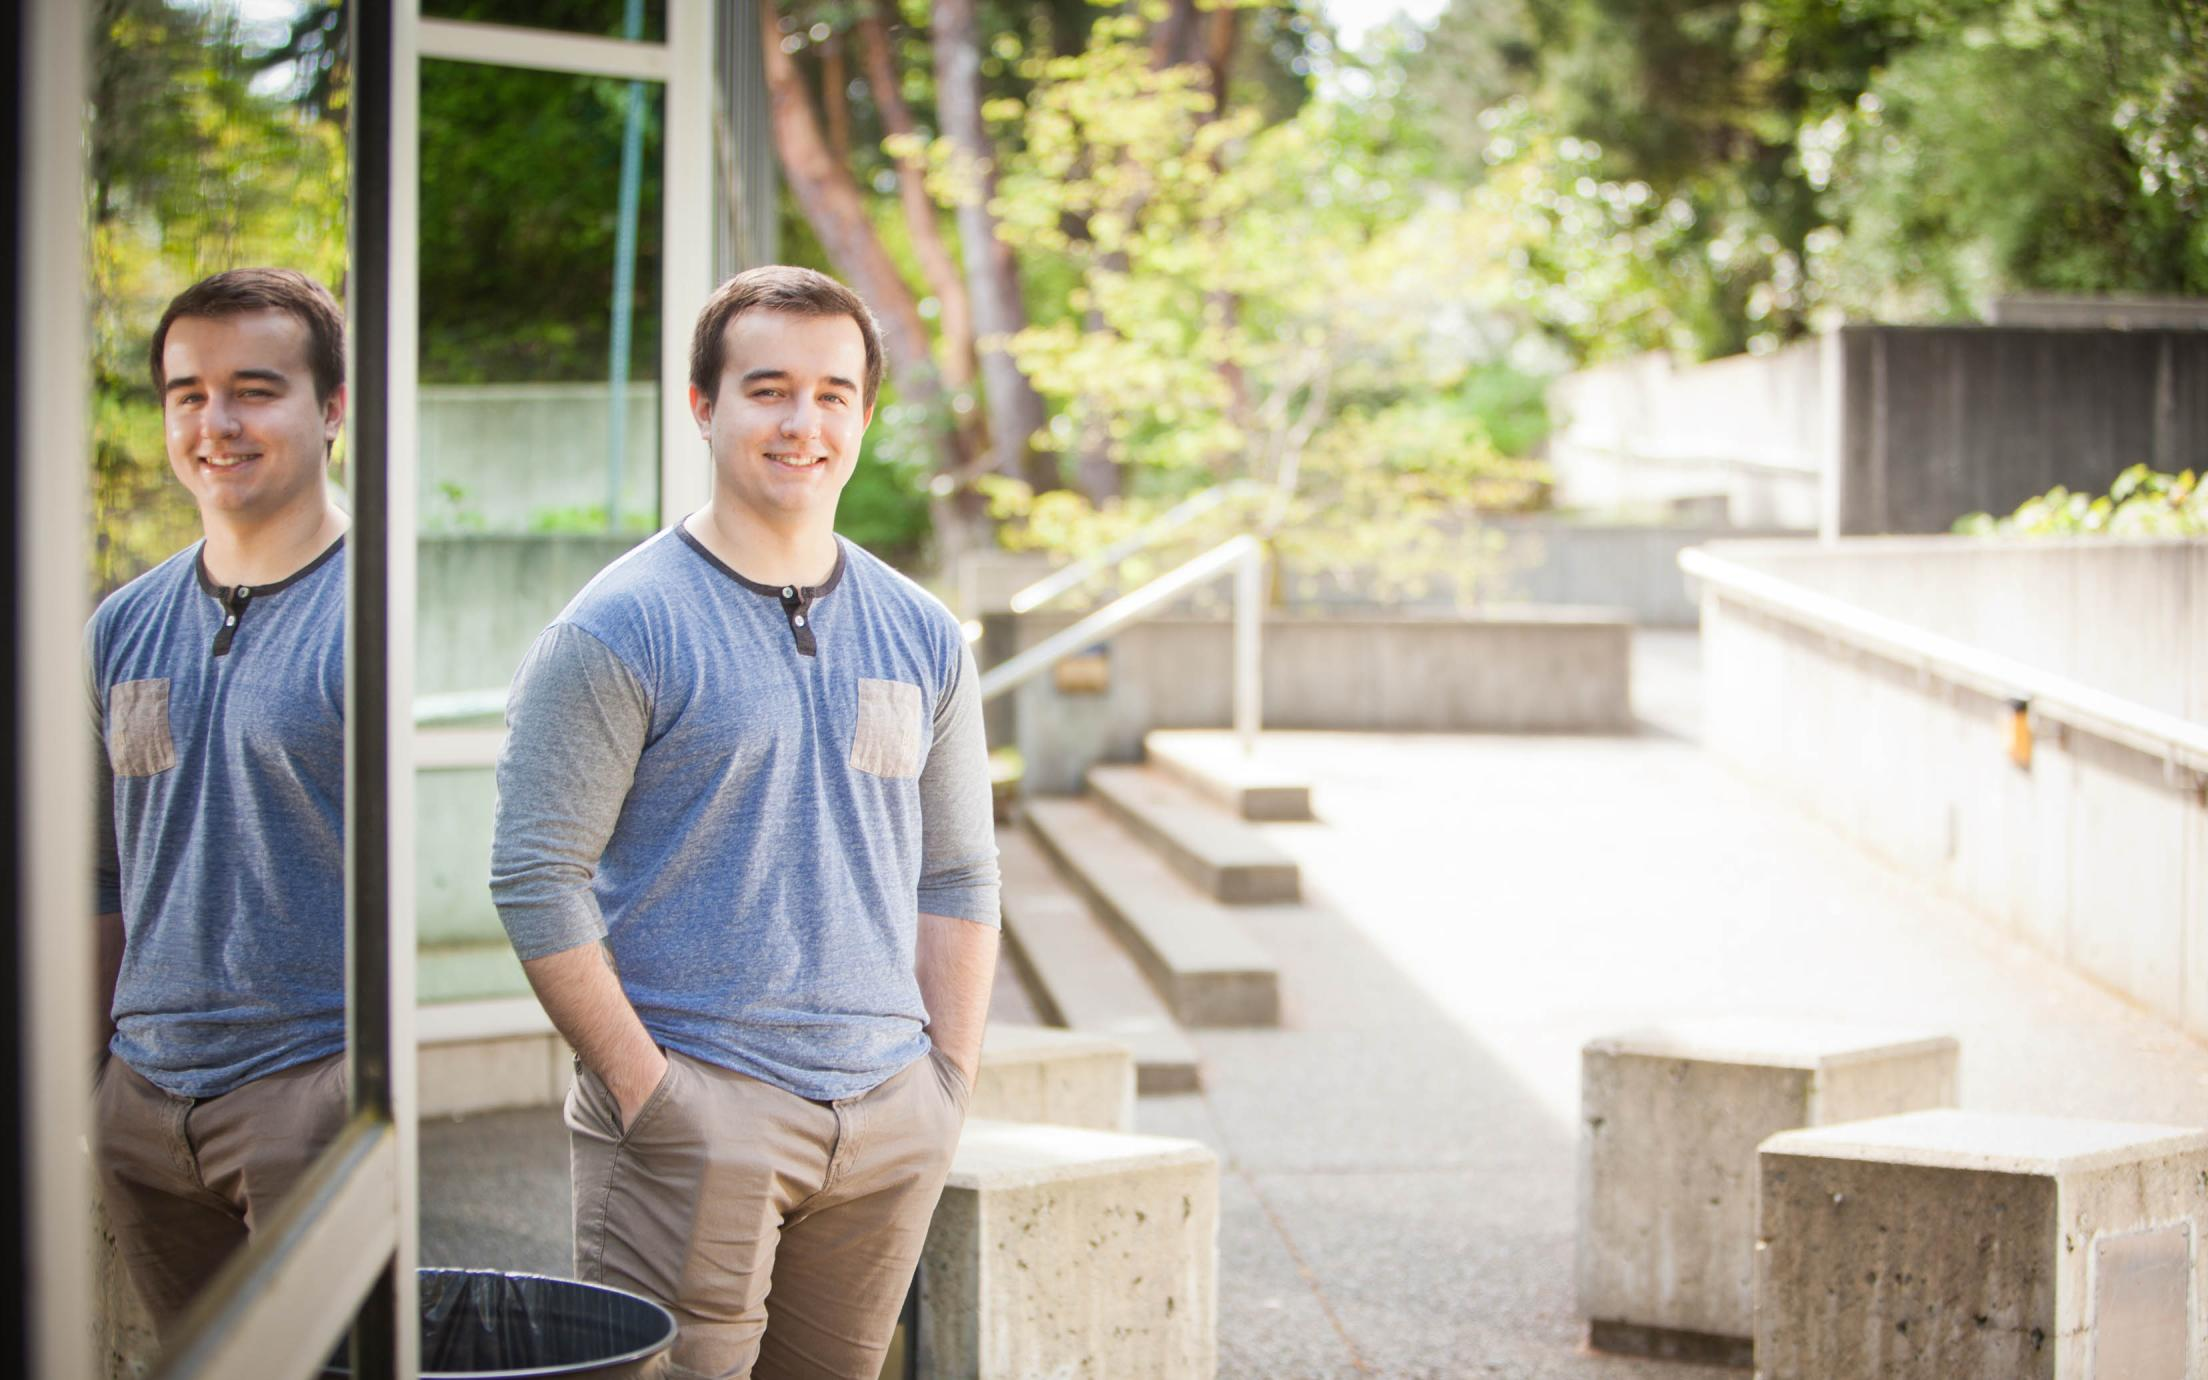 Bachelor of Business Administration (BBA) in Accounting Student, Brodie Virtanen